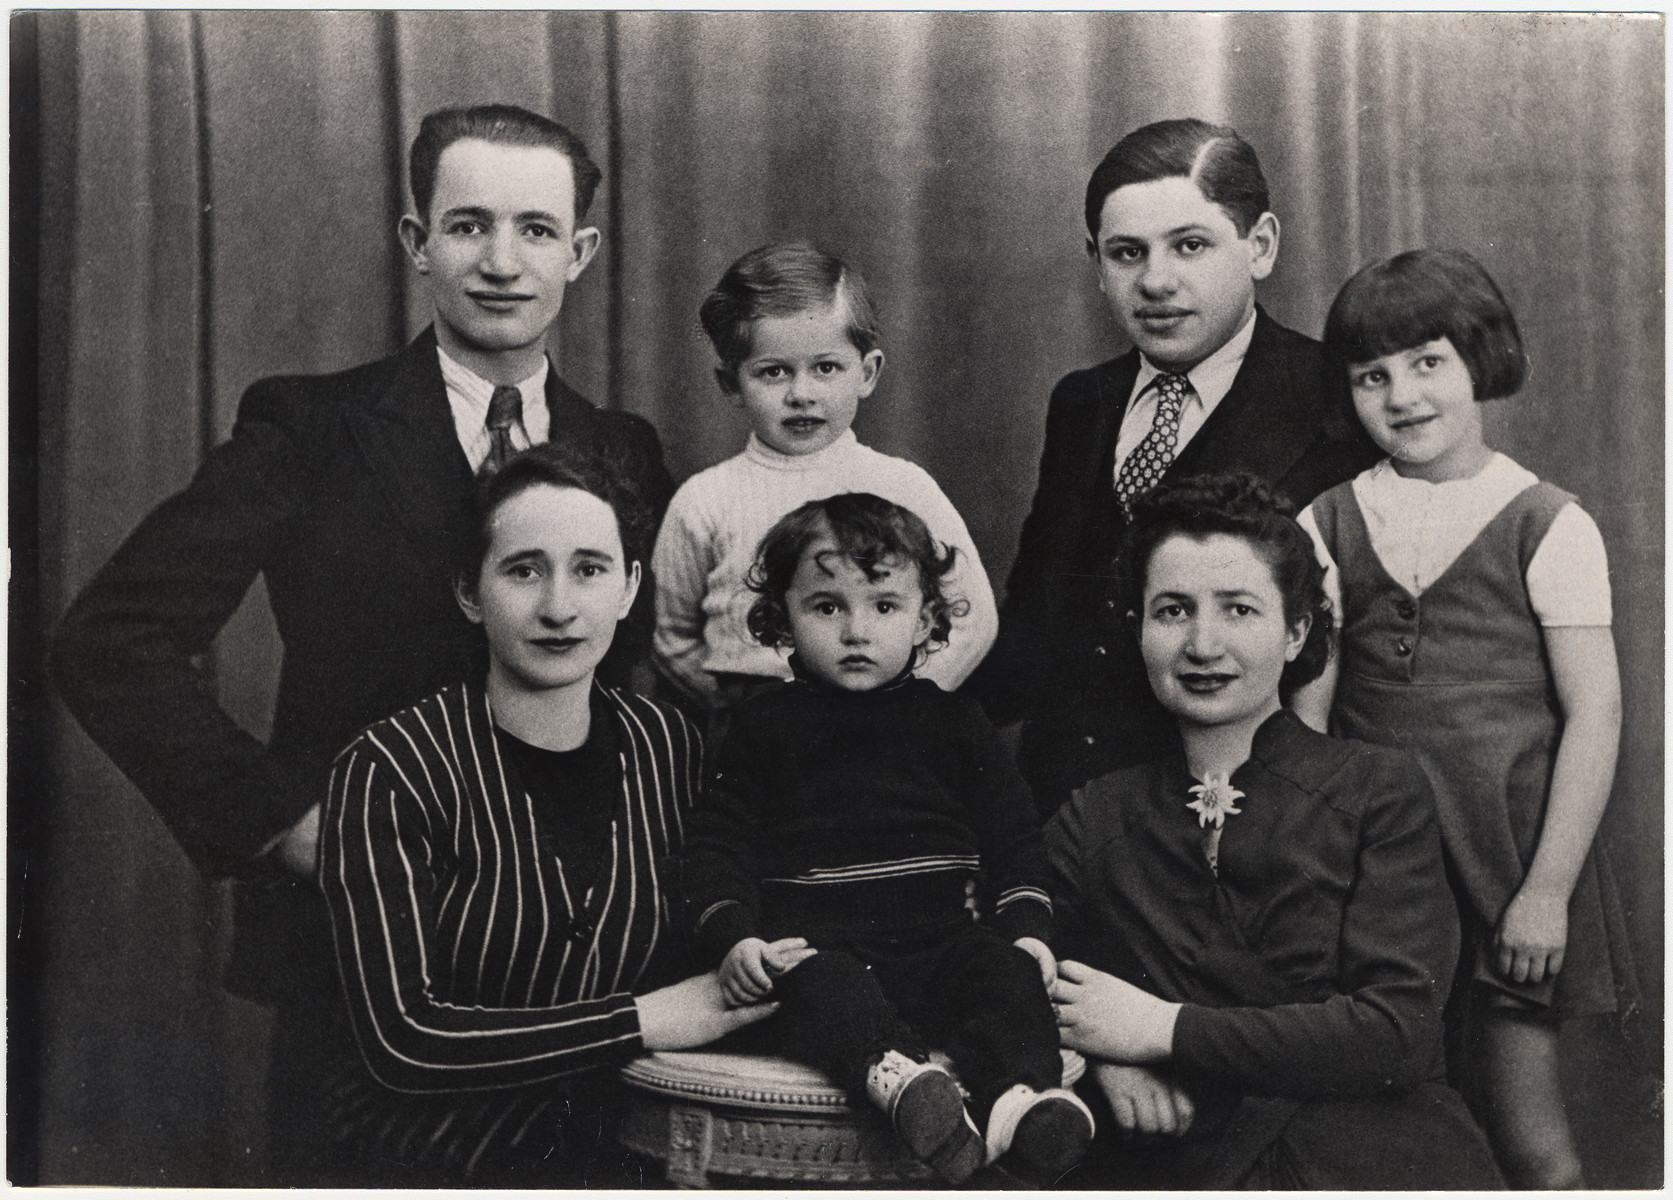 Group portrait of the Karpik family taken shortly after the German invasion of France.  Pictured are Jacques Karpik, with his parents, Szmul and Rojza (nee Taszynowicz) Karpik (left).  Also pictured are his aunt Rivkah Wasserman, uncle Benzion Wasserman and cousin Sarah Wasserman (later Wojakowski).